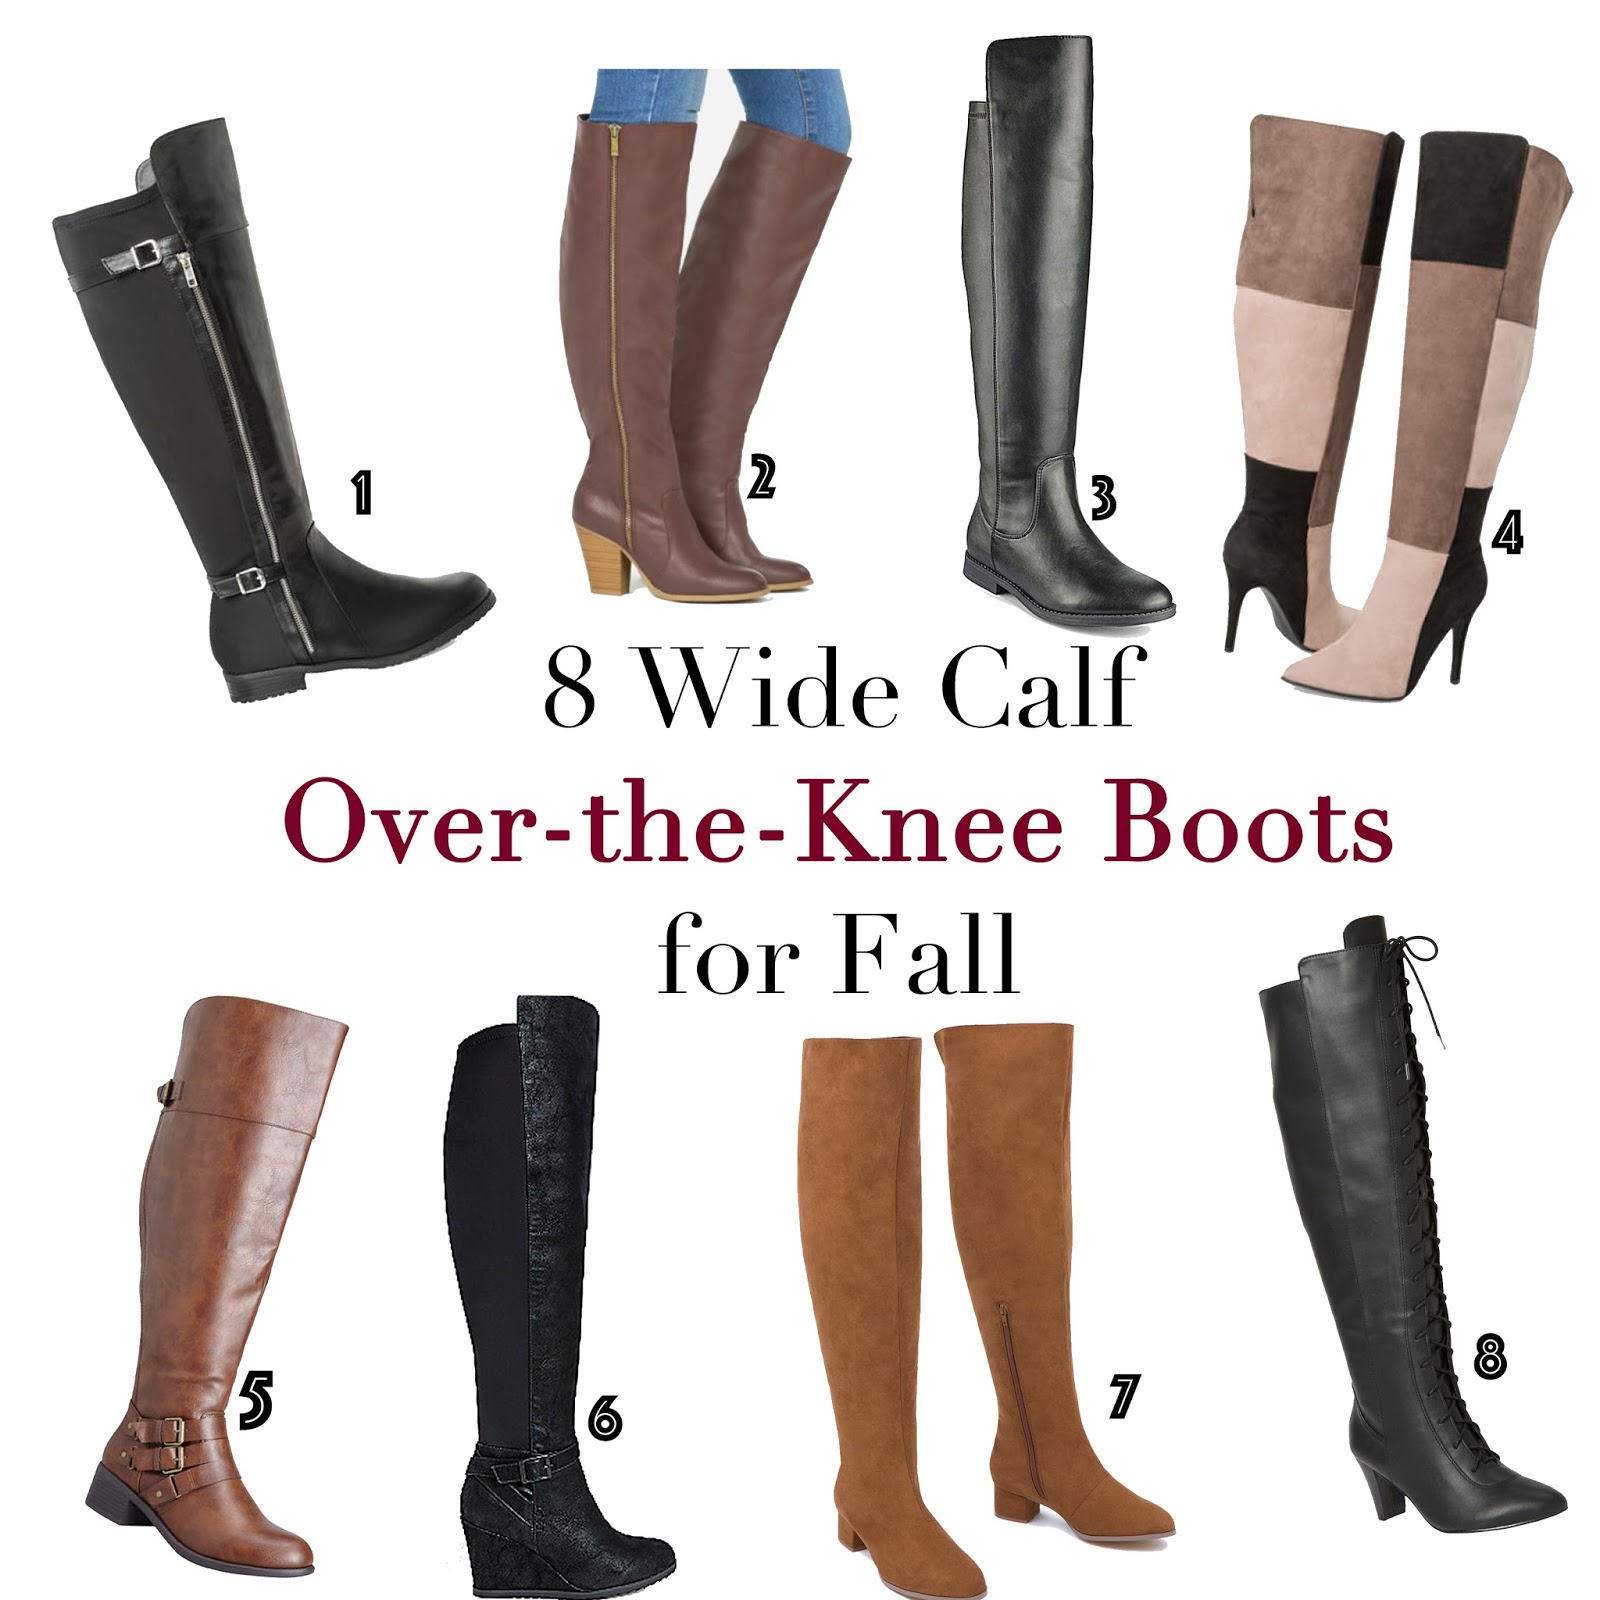 GarnerStyle | The Curvy Girl Guide: 8 Wide Calf Over-the-Knee Boot ...